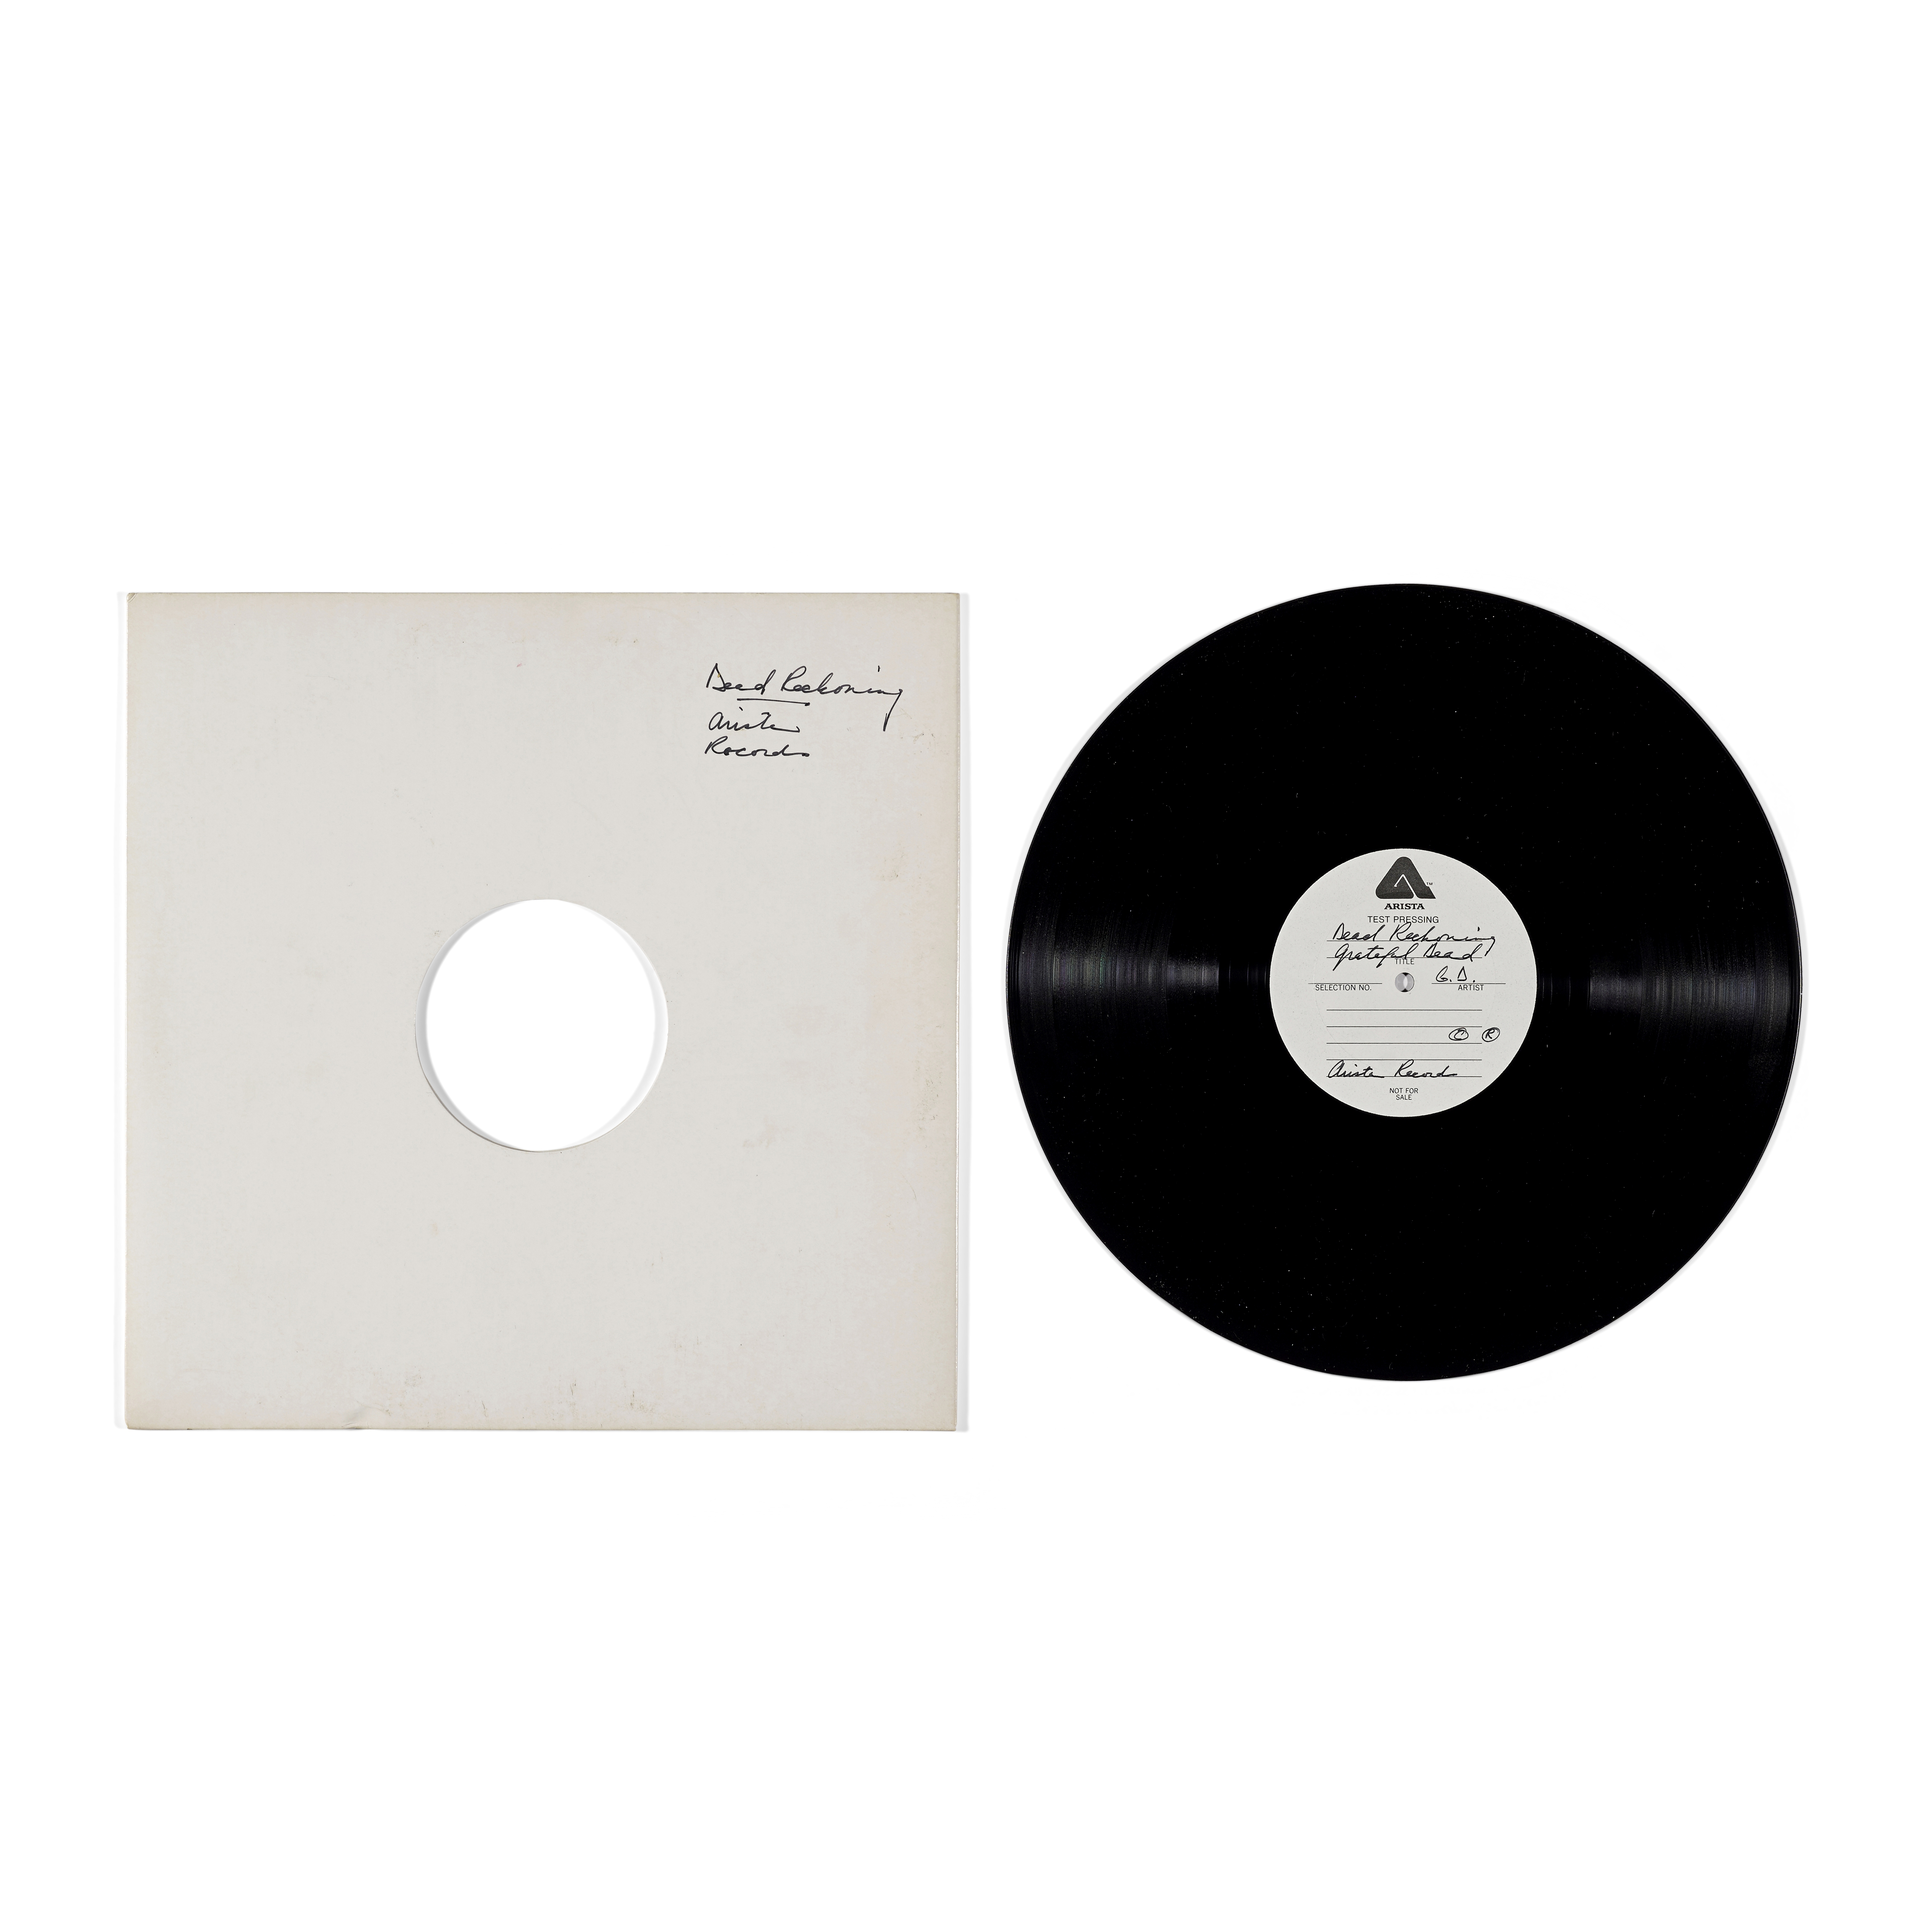 Lot 343 - A JERRY GARCIA TWO-SIDED TEST PRESSING FOR RECKONING 1981